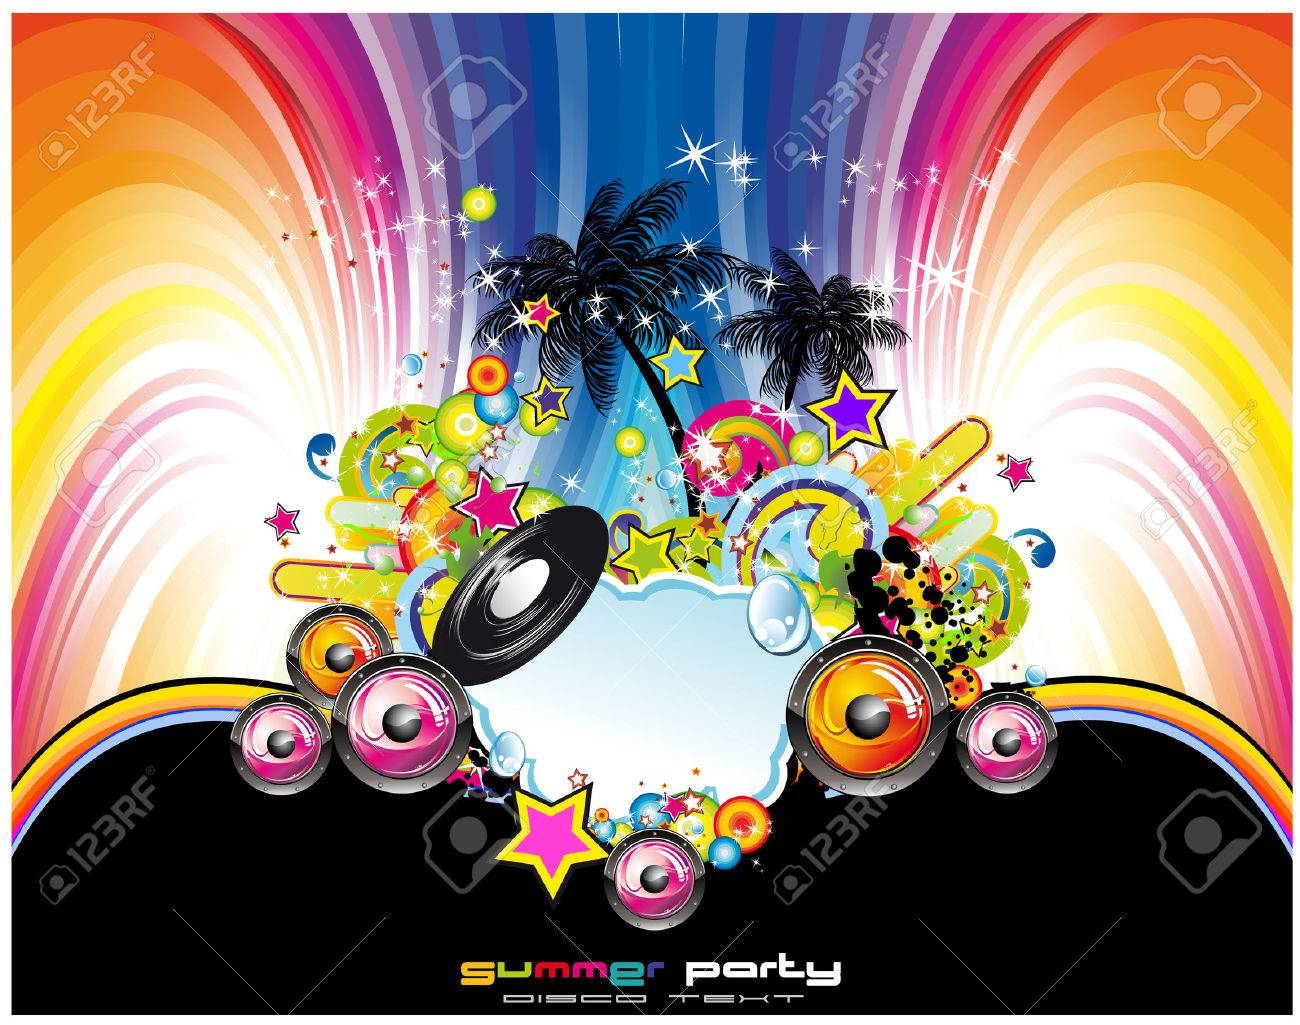 Tropical and latin music event background for flyers or posters